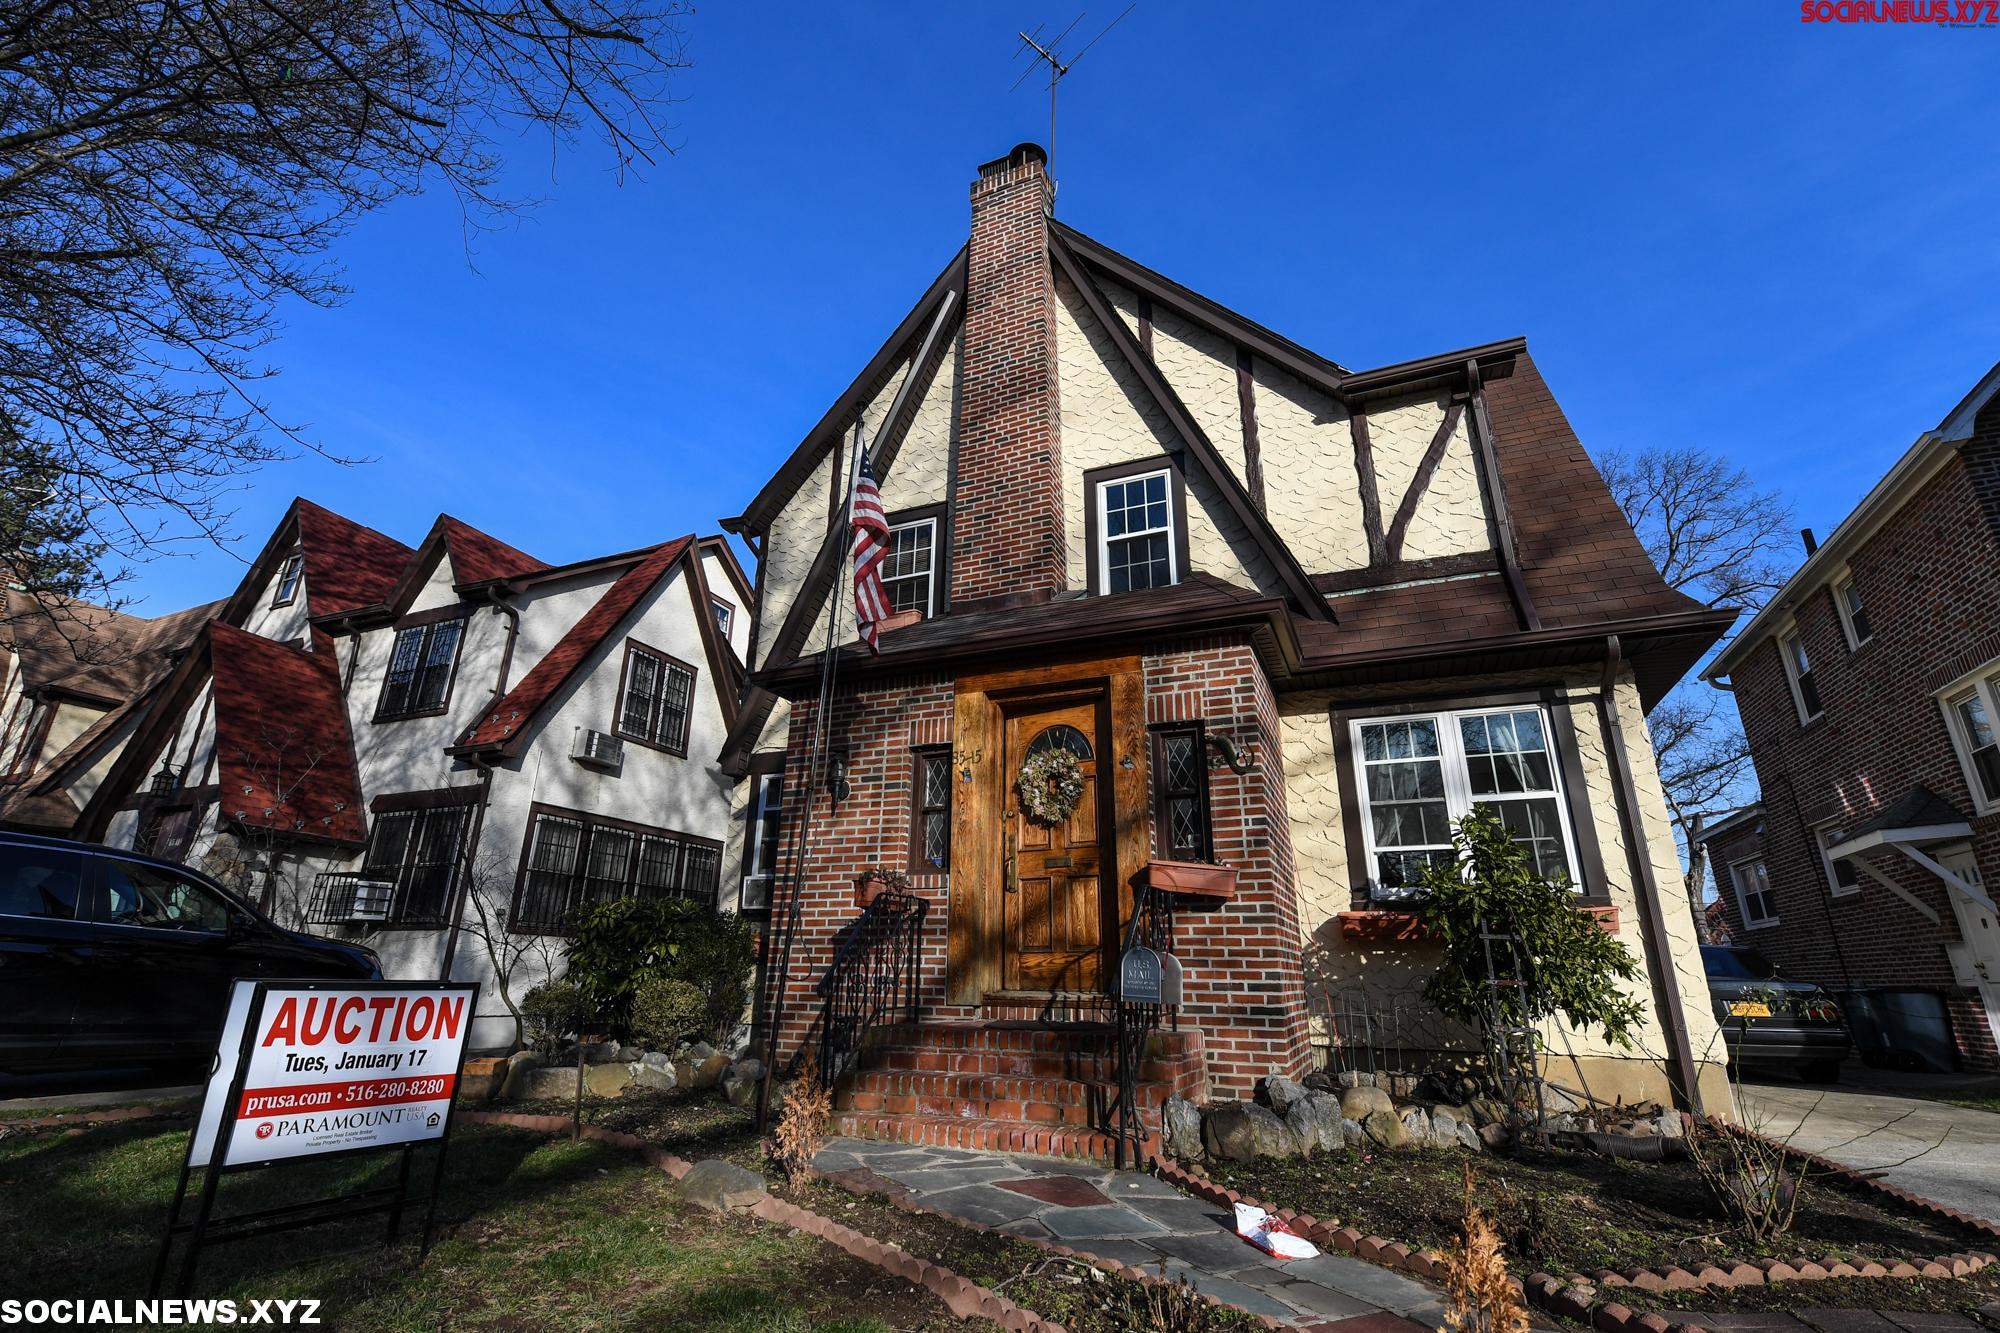 U.S. NEW YORK DONALD TRUMP CHILDHOOD HOME AUCTION